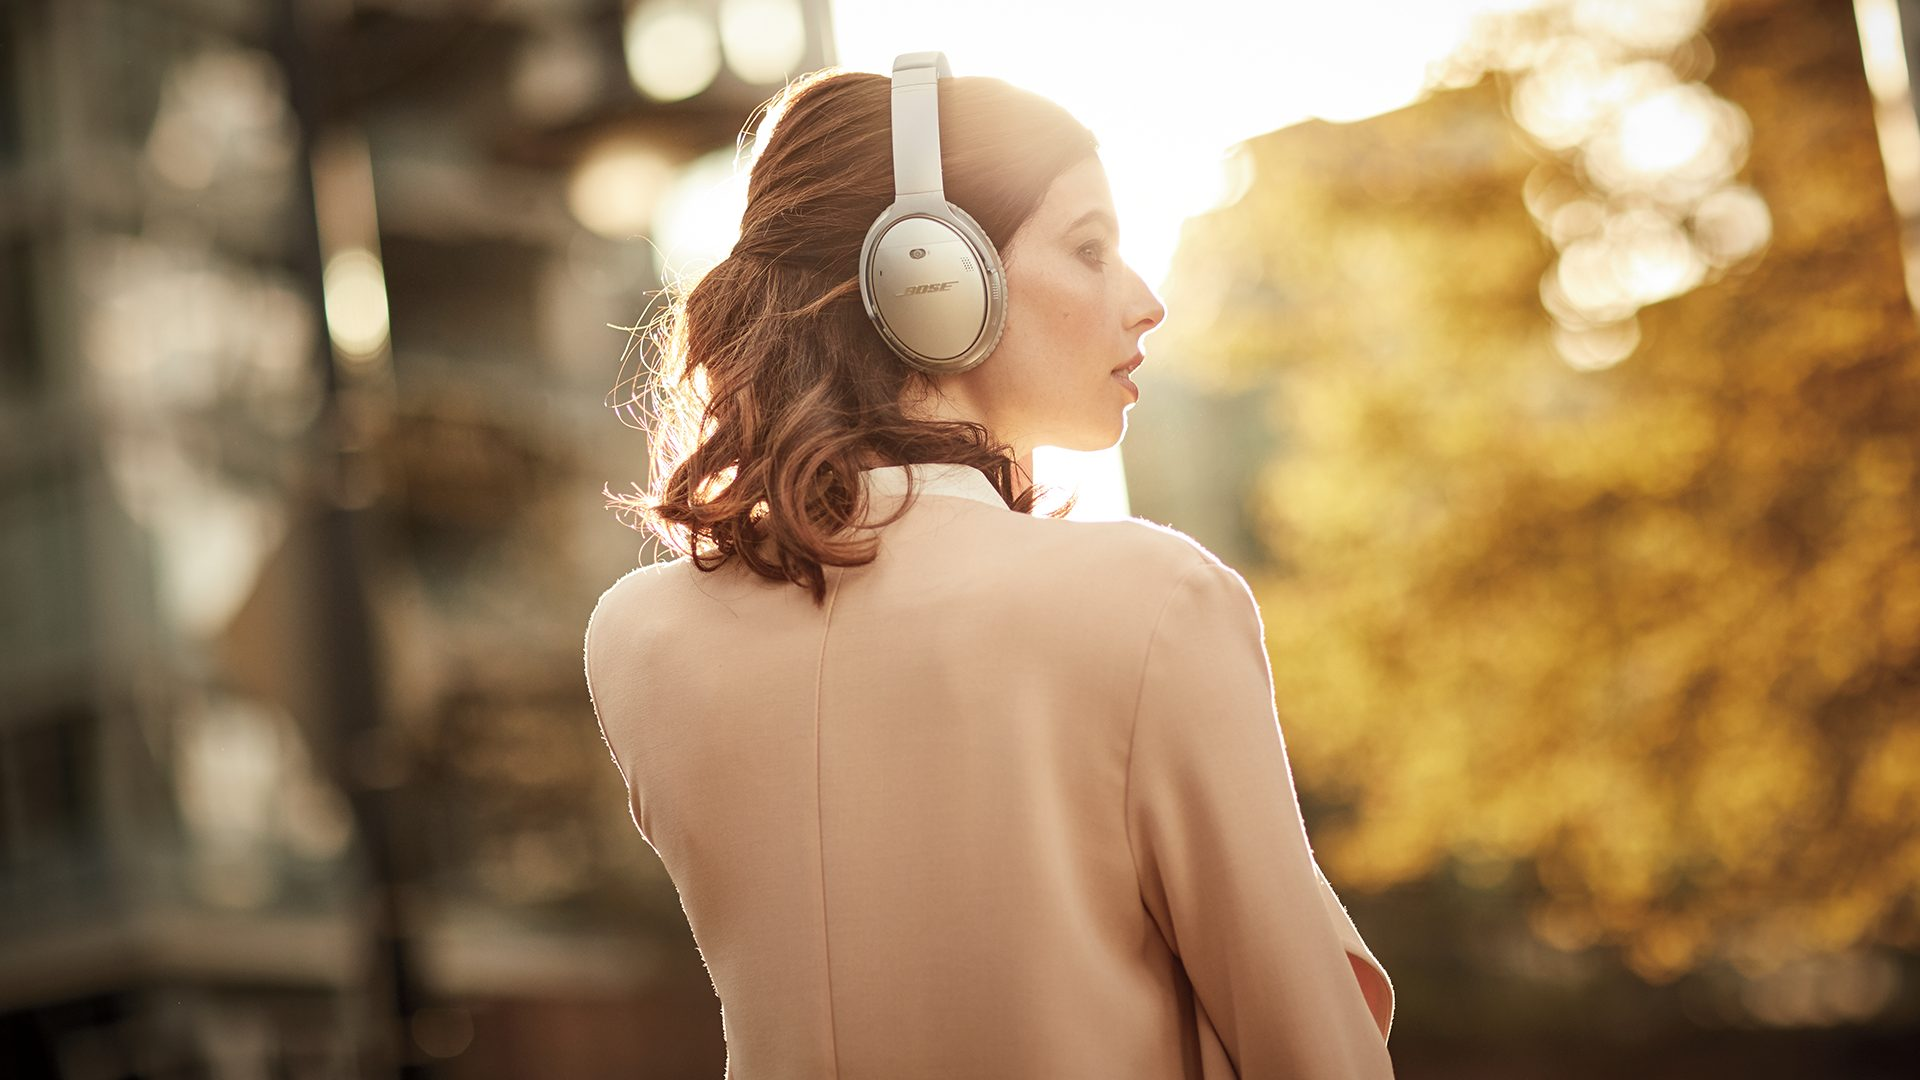 Design Lead for Alexa Mobile Accessories - I worked as the Design Lead on Alexa Mobile Accessory (AMA) to bring Alexa to the Bose QC35II headphones.